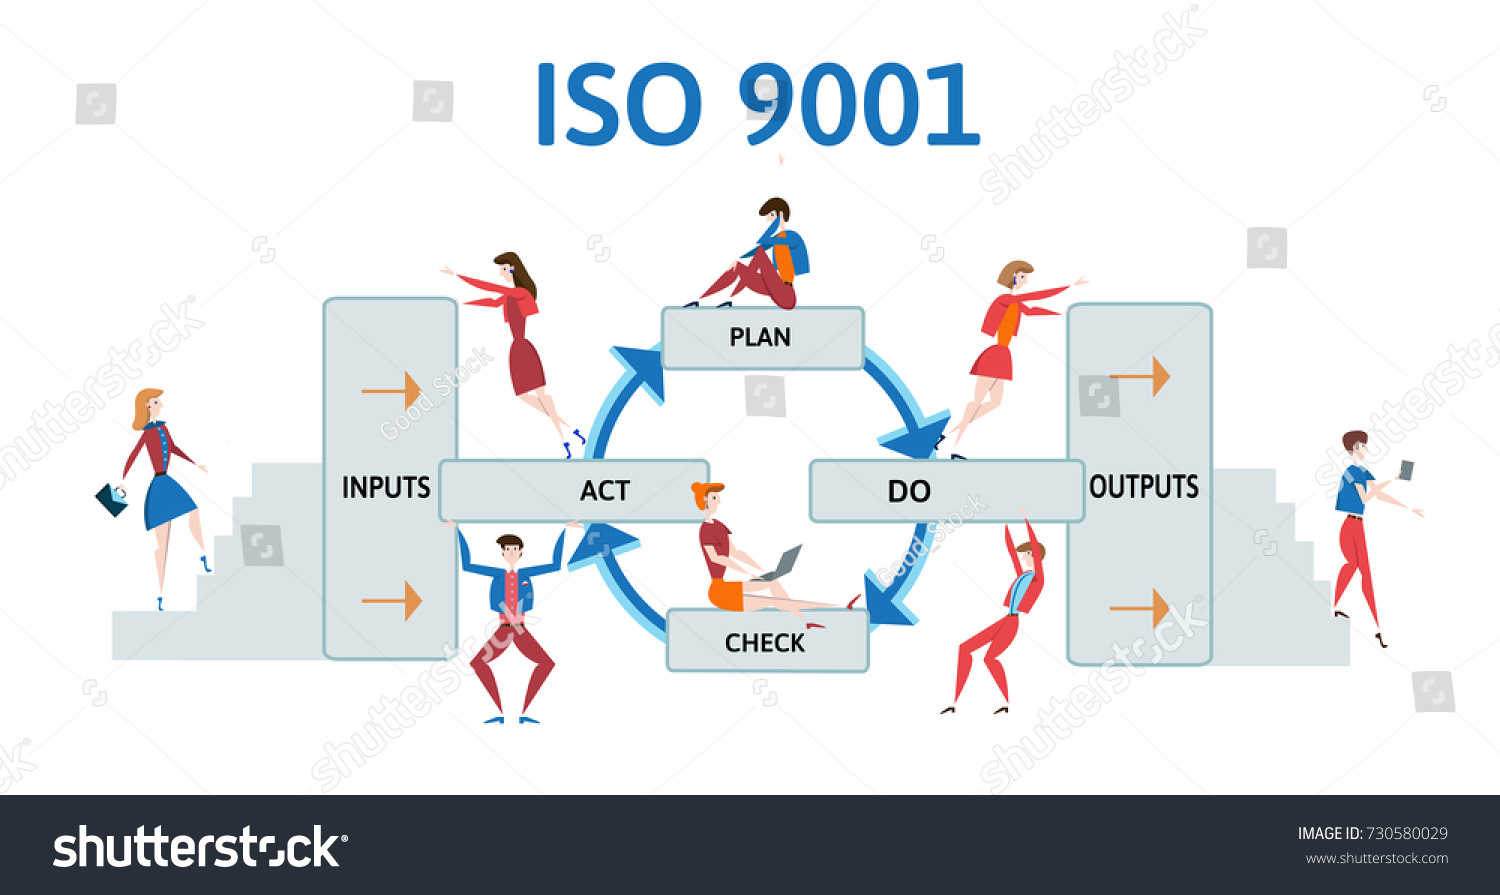 ISO 9001 quality management system. Process diagram with business men and  women. Illustration,